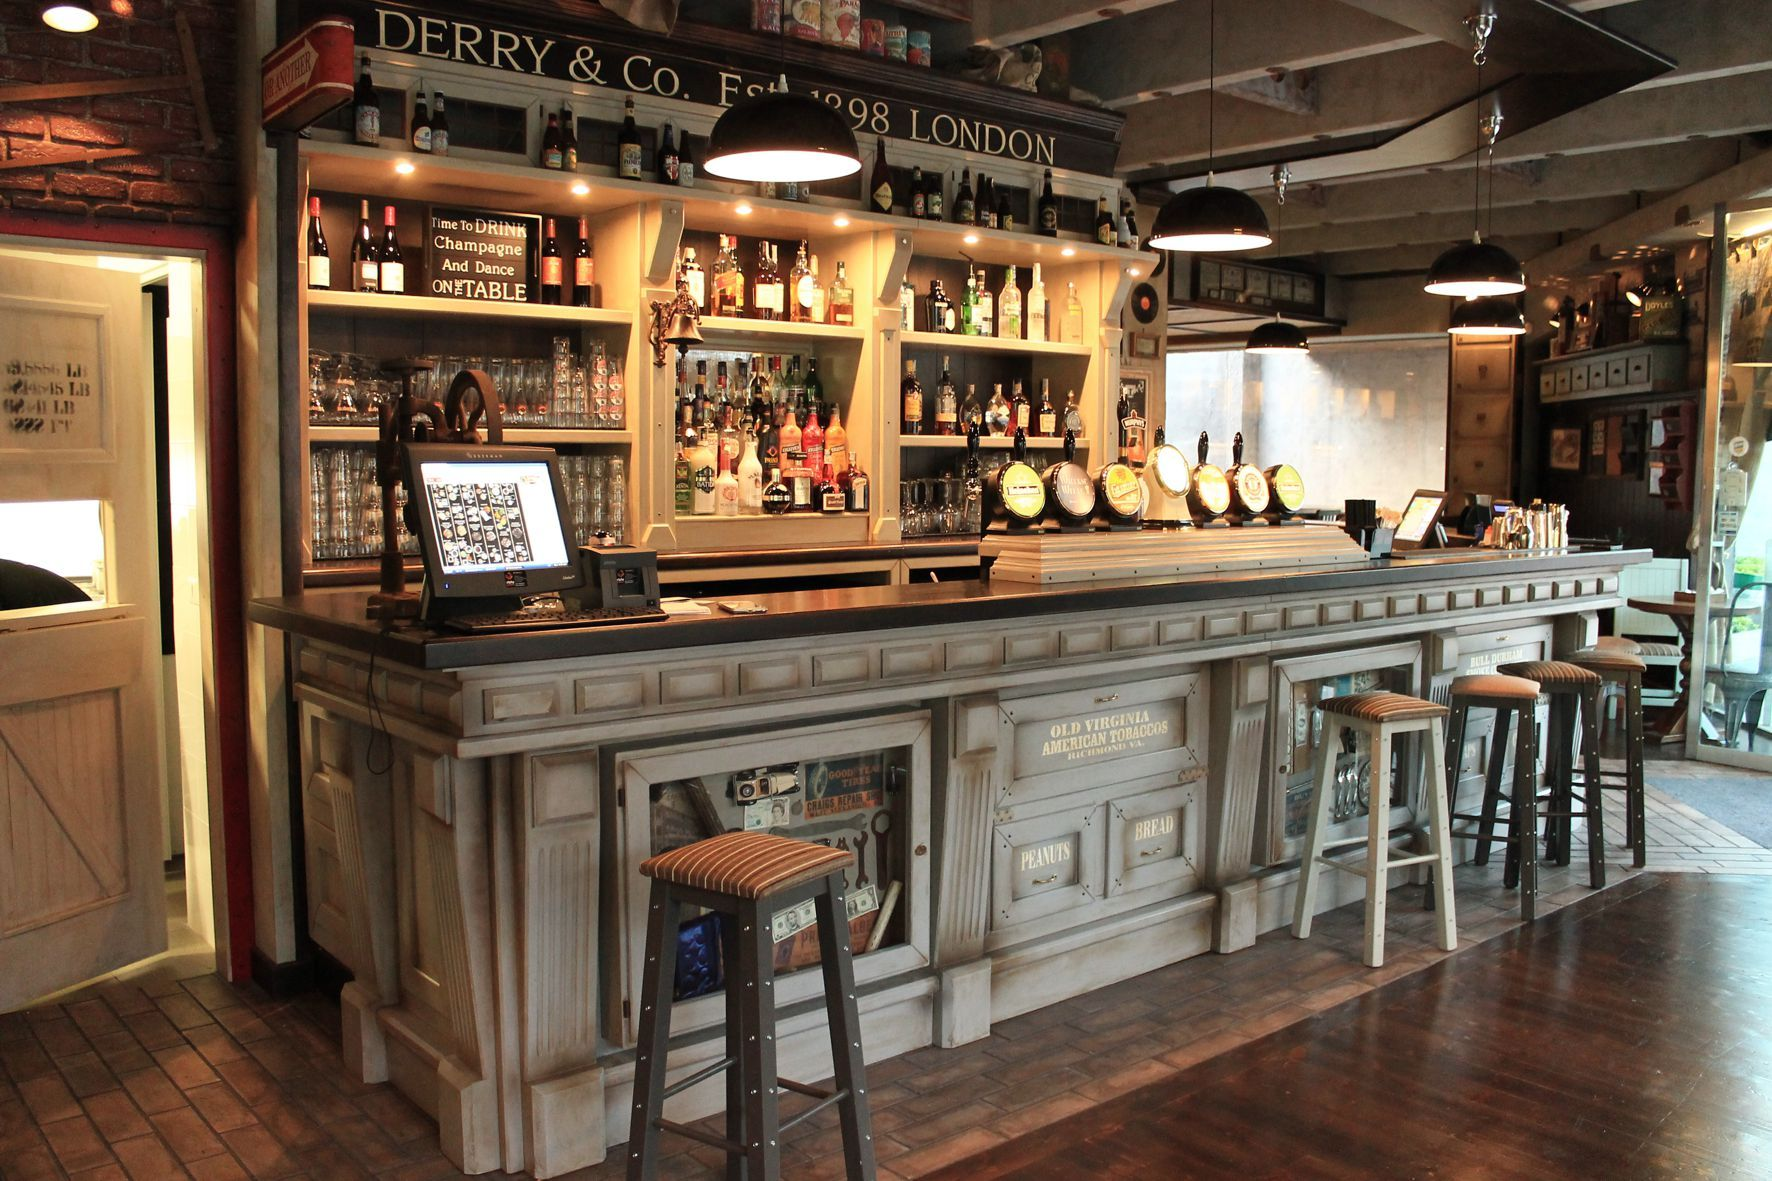 Camproject srl arredo pub arredamenti arredi per irish pub english pub birrerie in stile for Artic arredo bar